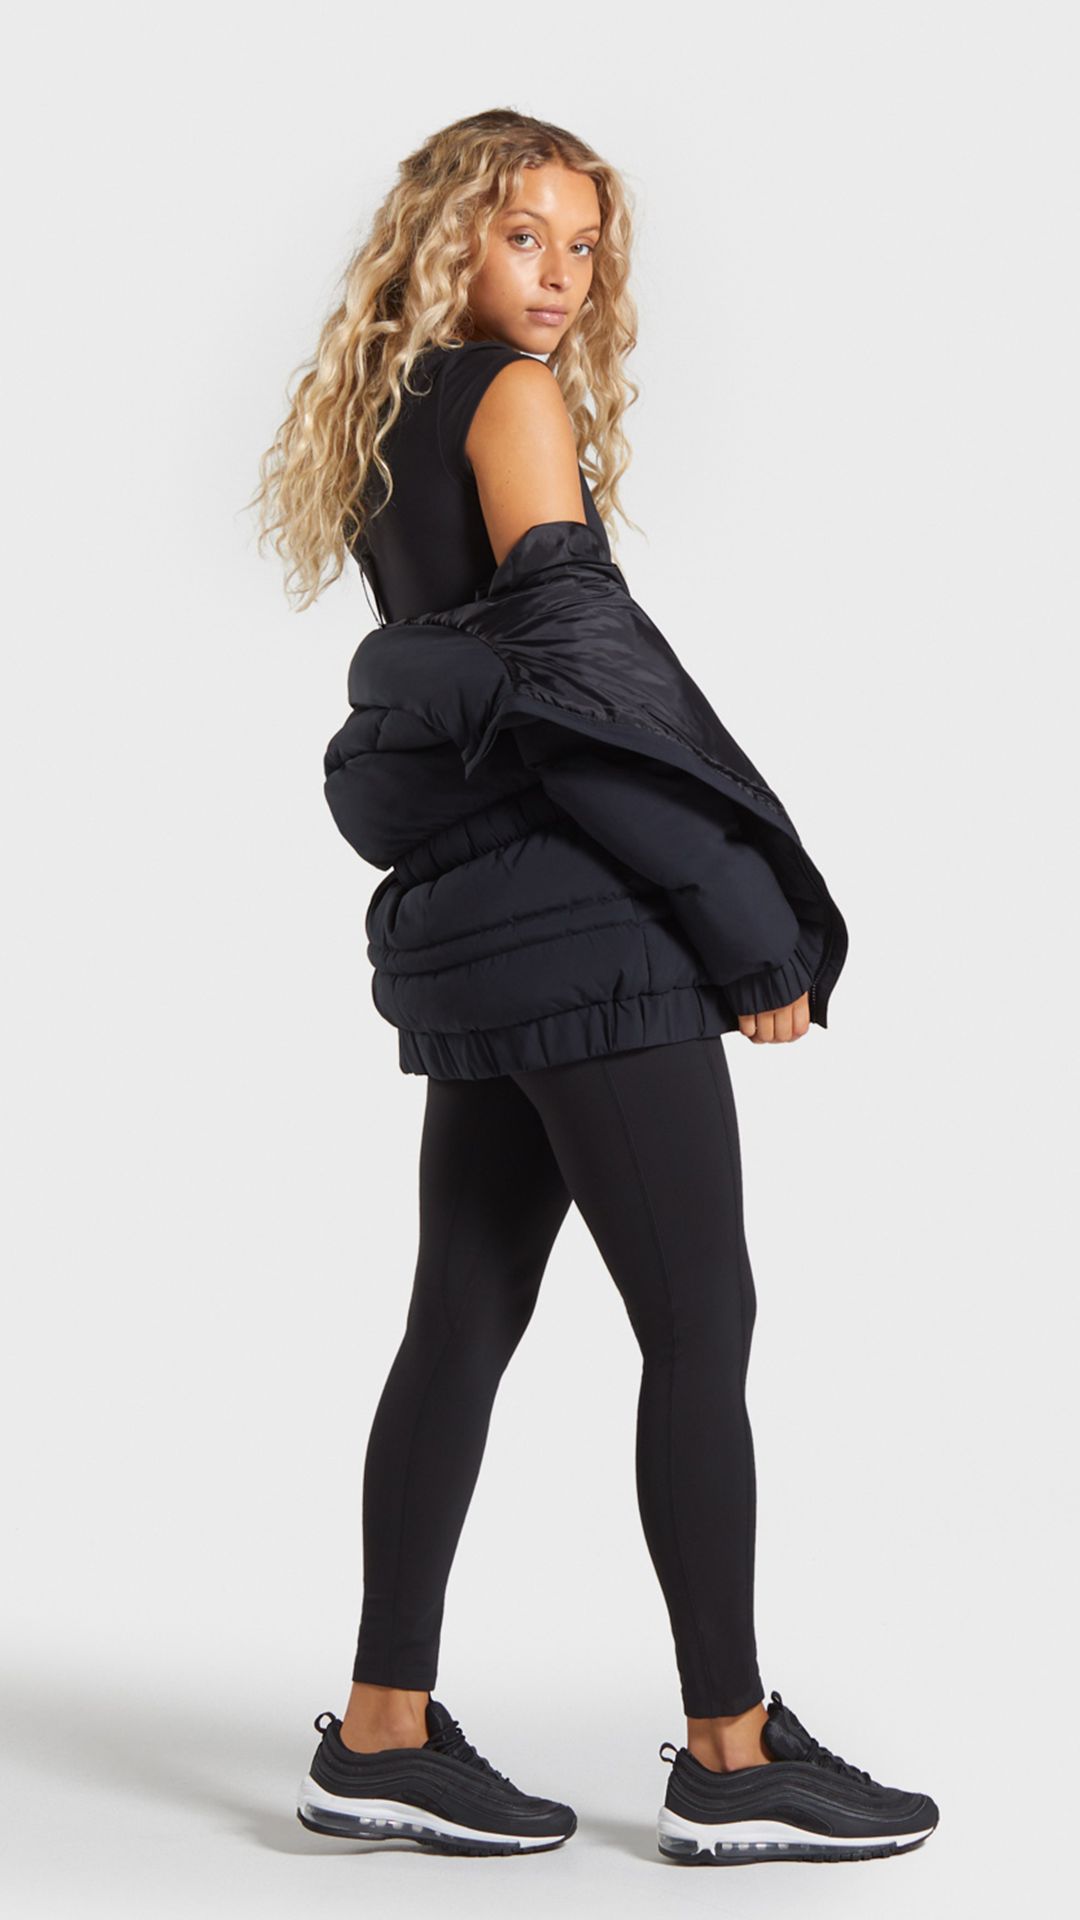 The Puffer Jacket Gymshark Gym Sweat Train Perform Seamless Exercise Strength Strong Power Fitness Outfitin Gymshark Women Gymshark Puffer Jackets [ 1920 x 1080 Pixel ]